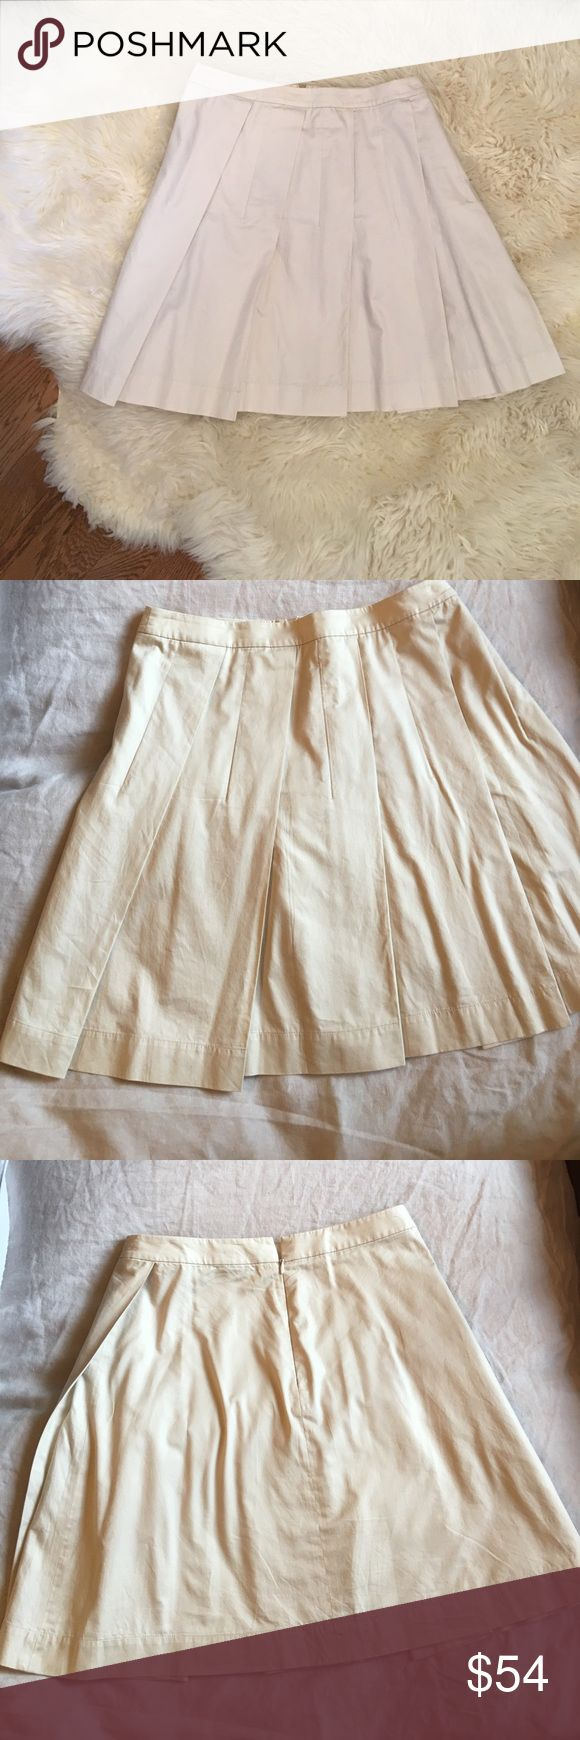 Theory Skirt A summer must have! Pleated in the front, but flat in back -- a brilliant design by Theory! This skirt has all the cuteness of pleats but without the bulk around the waist! Really super summer wardrobe stable. Looks so cute with a plain white tee or tank with flats, sandals or flip flops! I've also worn it with a navy Boyfriend Blazer and pointed Dior pumps. It's also adorable with a little summer cashmere sweater. Classic, versatile style. Great price! Theory Skirts Midi